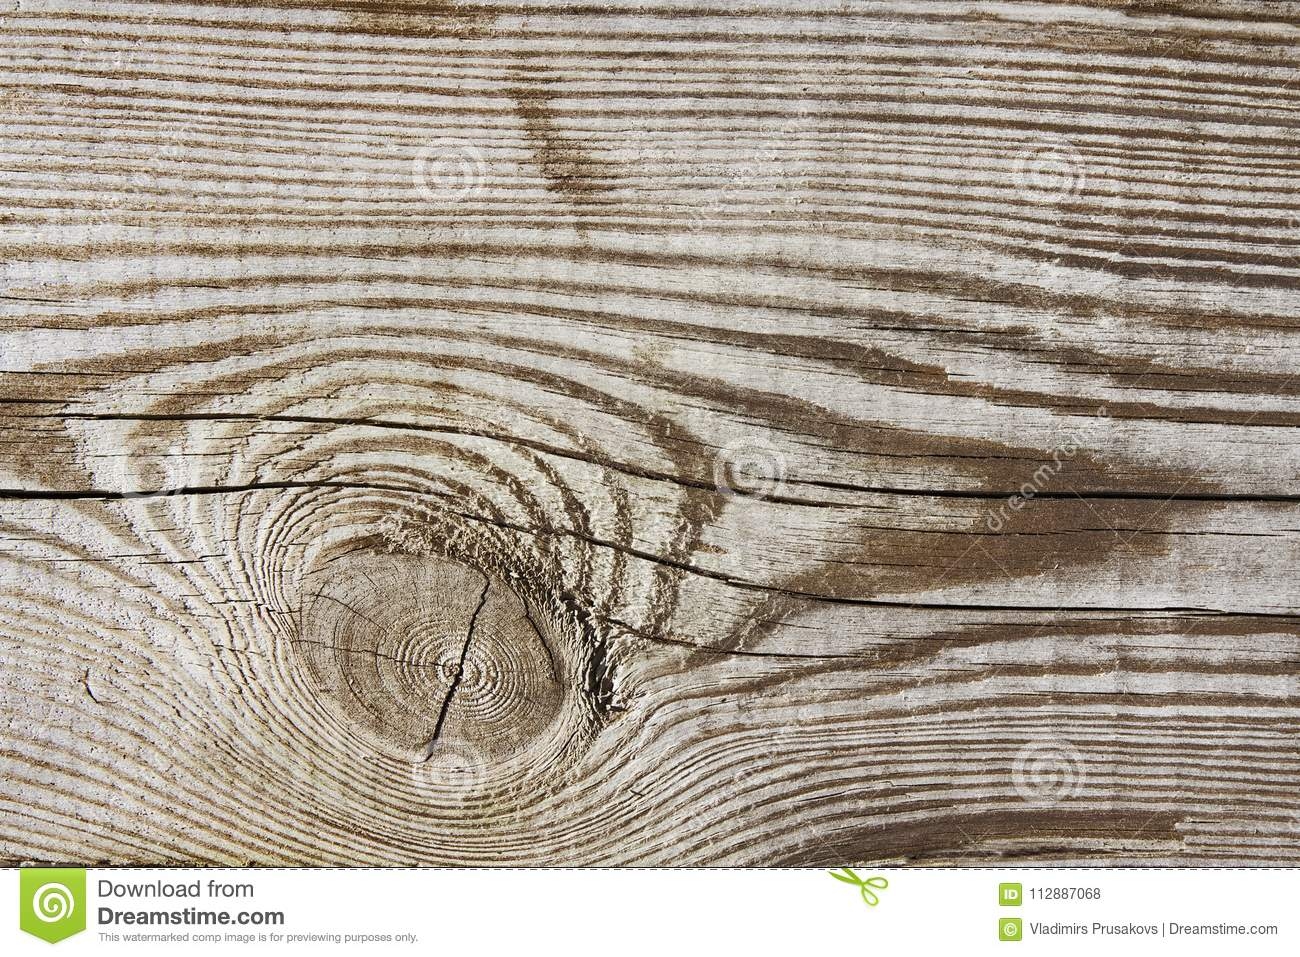 Wood texture plank grain timber background, wooden desk knot